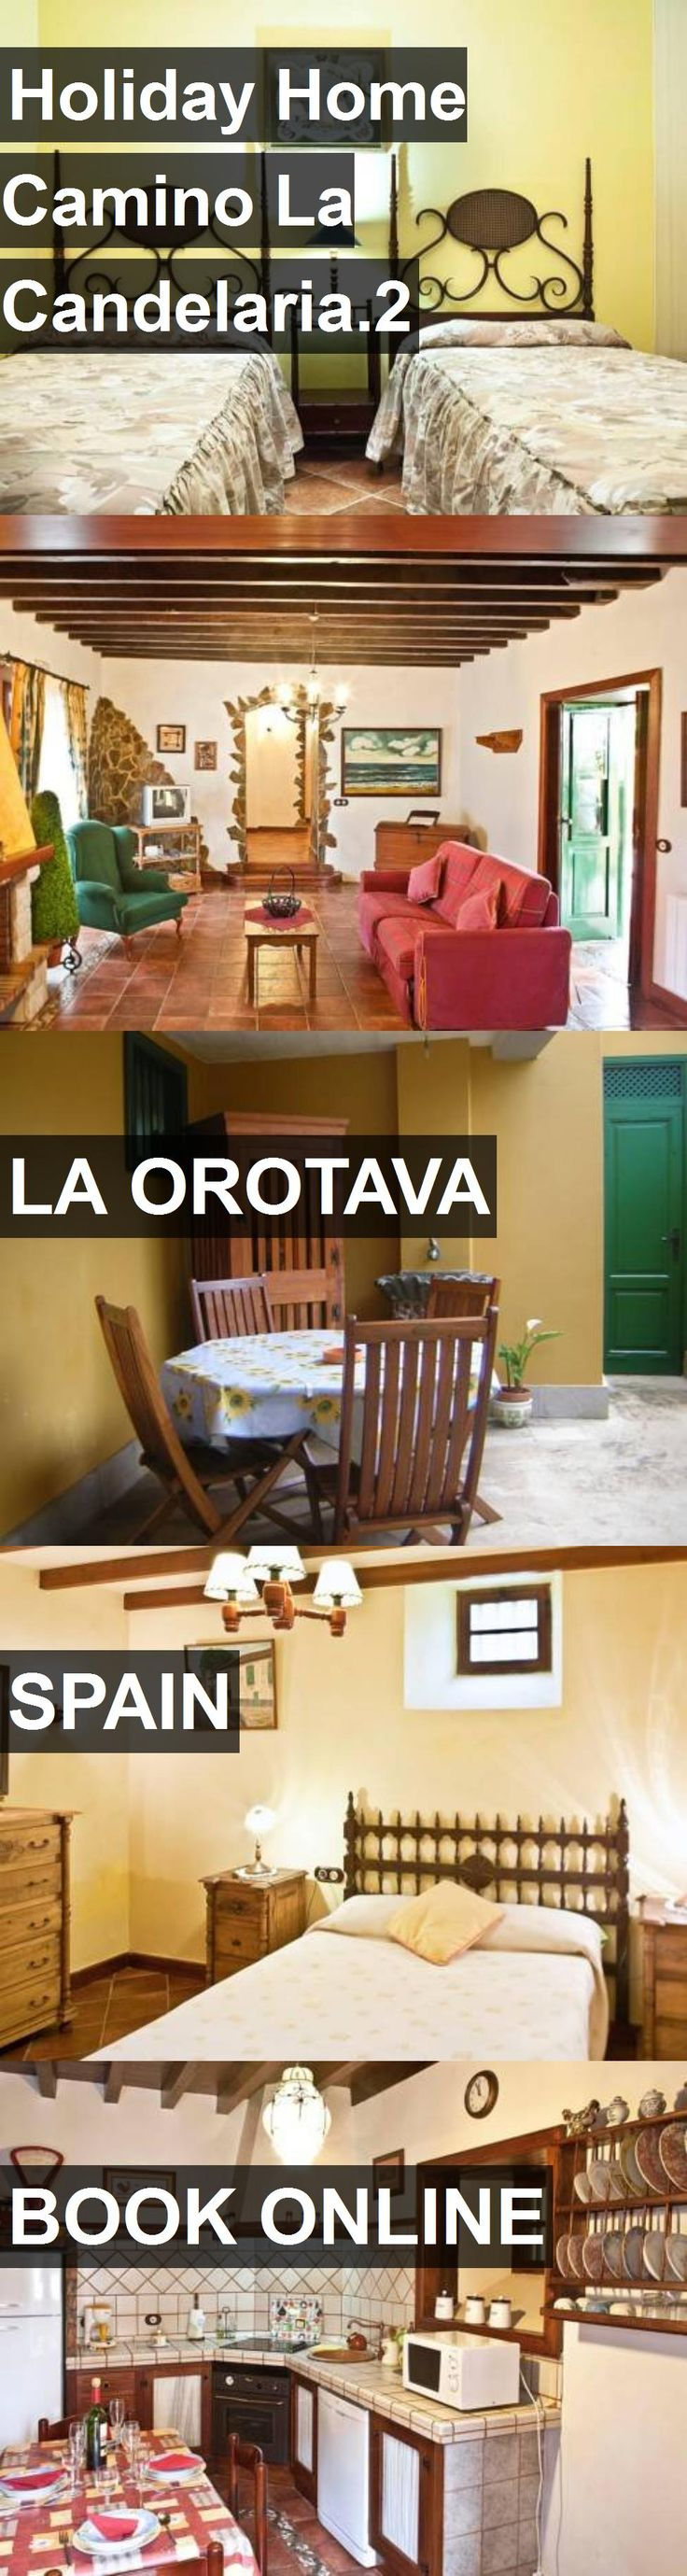 Hotel Holiday Home Camino La Candelaria.2 in La Orotava, Spain. For more information, photos, reviews and best prices please follow the link. #Spain #LaOrotava #travel #vacation #hotel